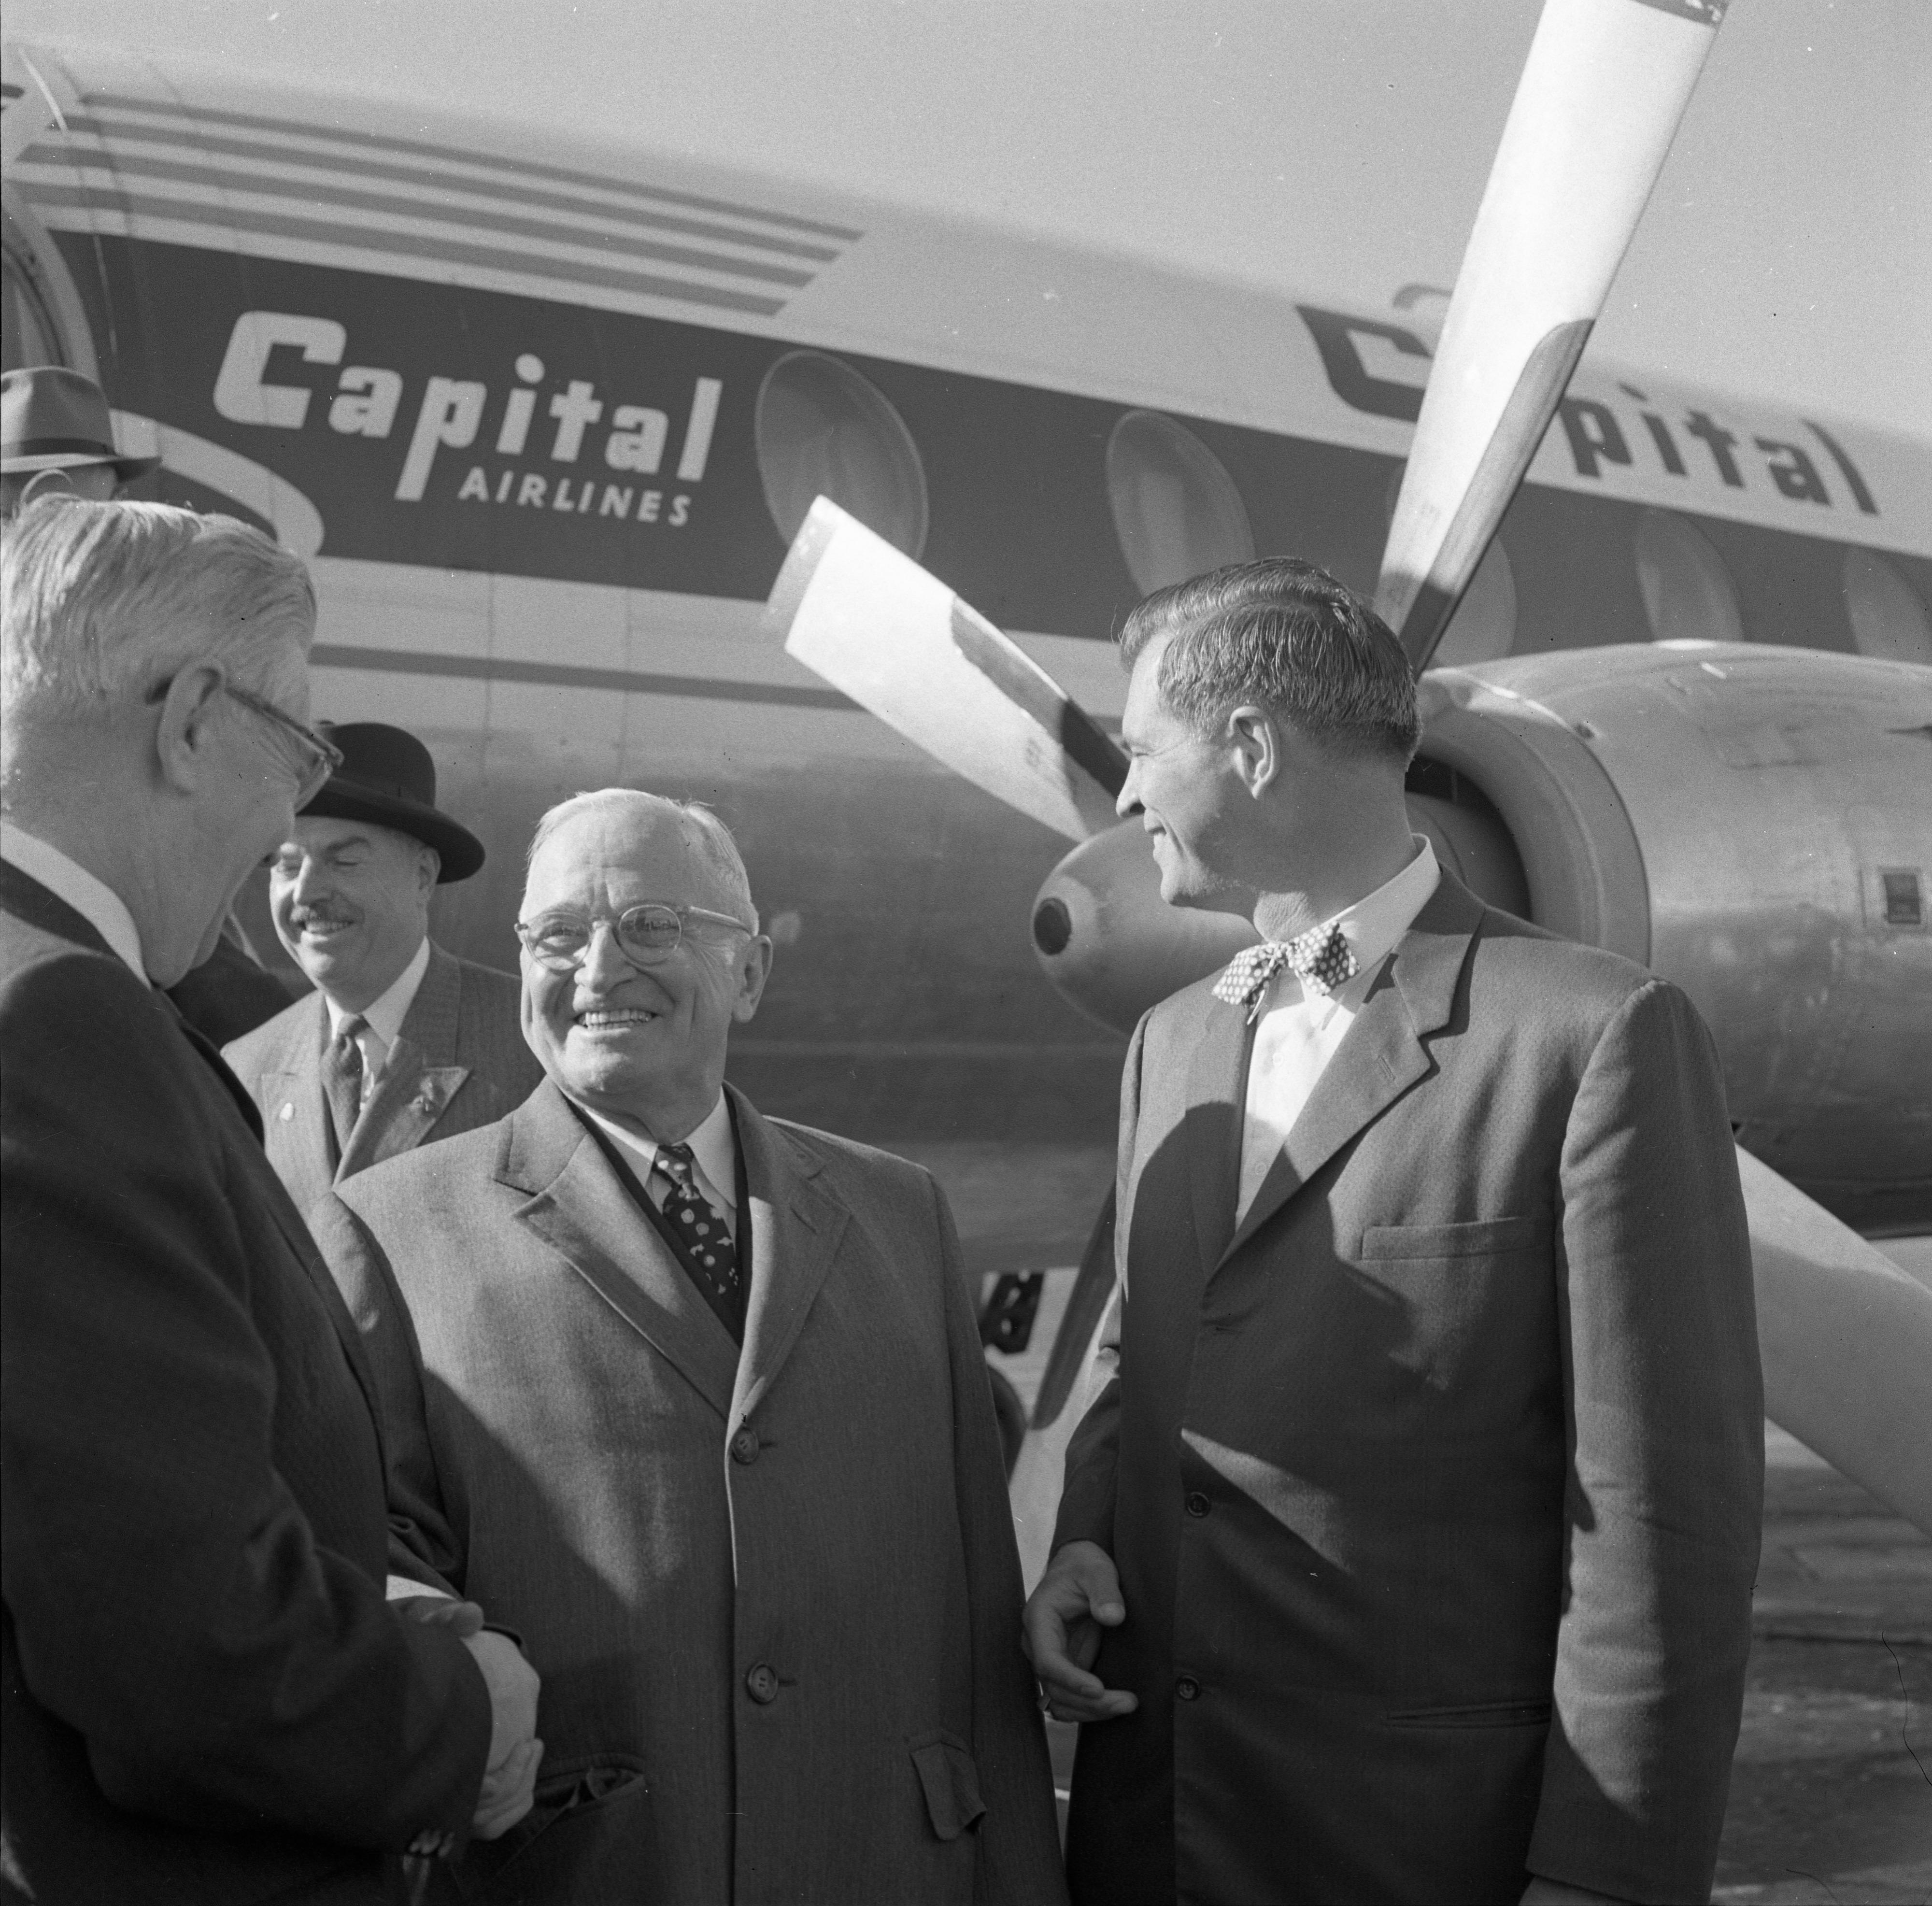 Harry Truman Is Greeted by Governor G. Mennon Williams & Others At Willow Run Airport, October 1958 image